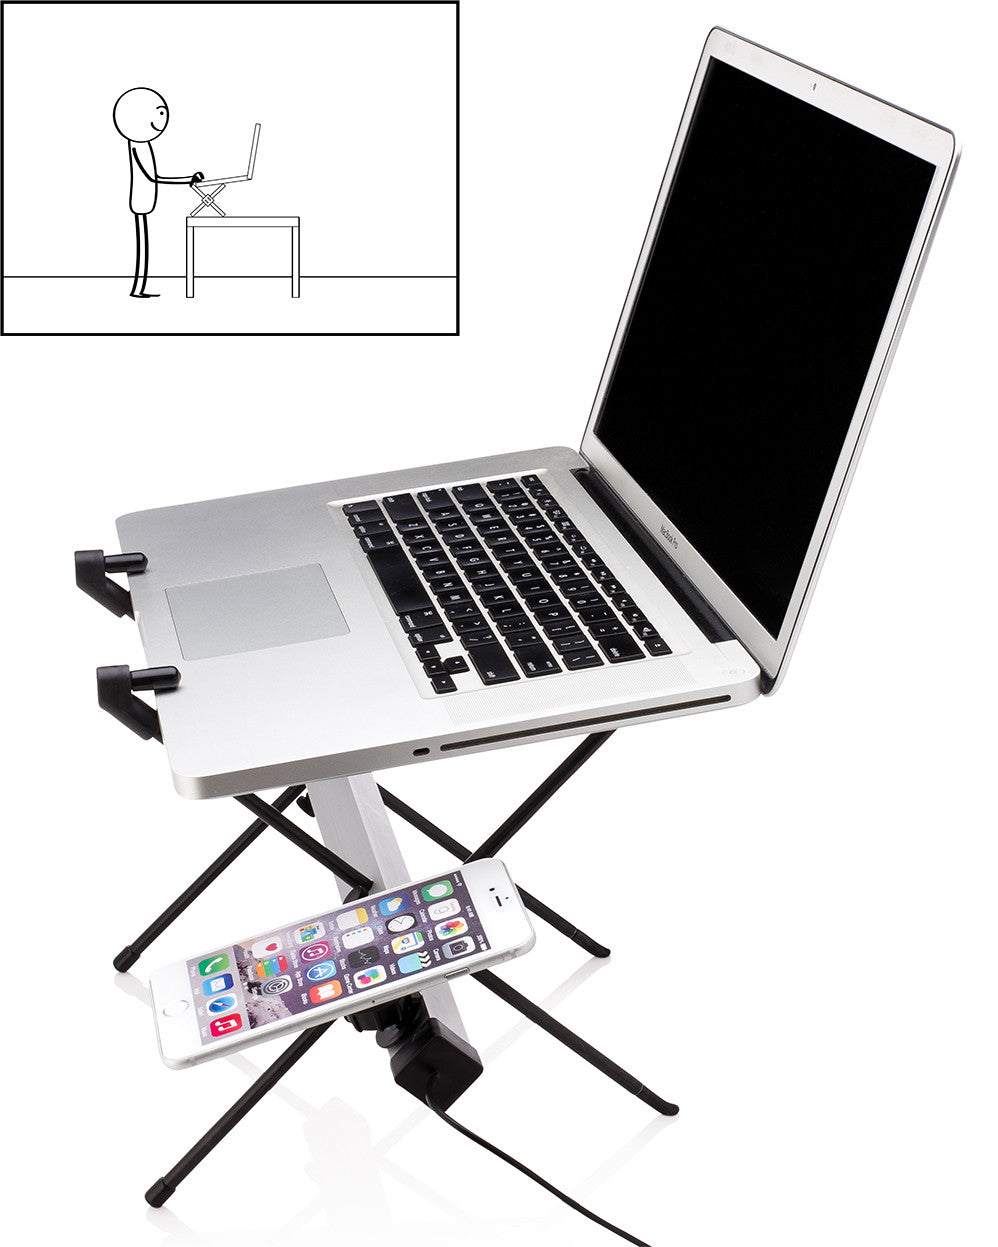 xstand universal laptop stand in stand up position with smartphone magnetically attached and made with anodized aluminum